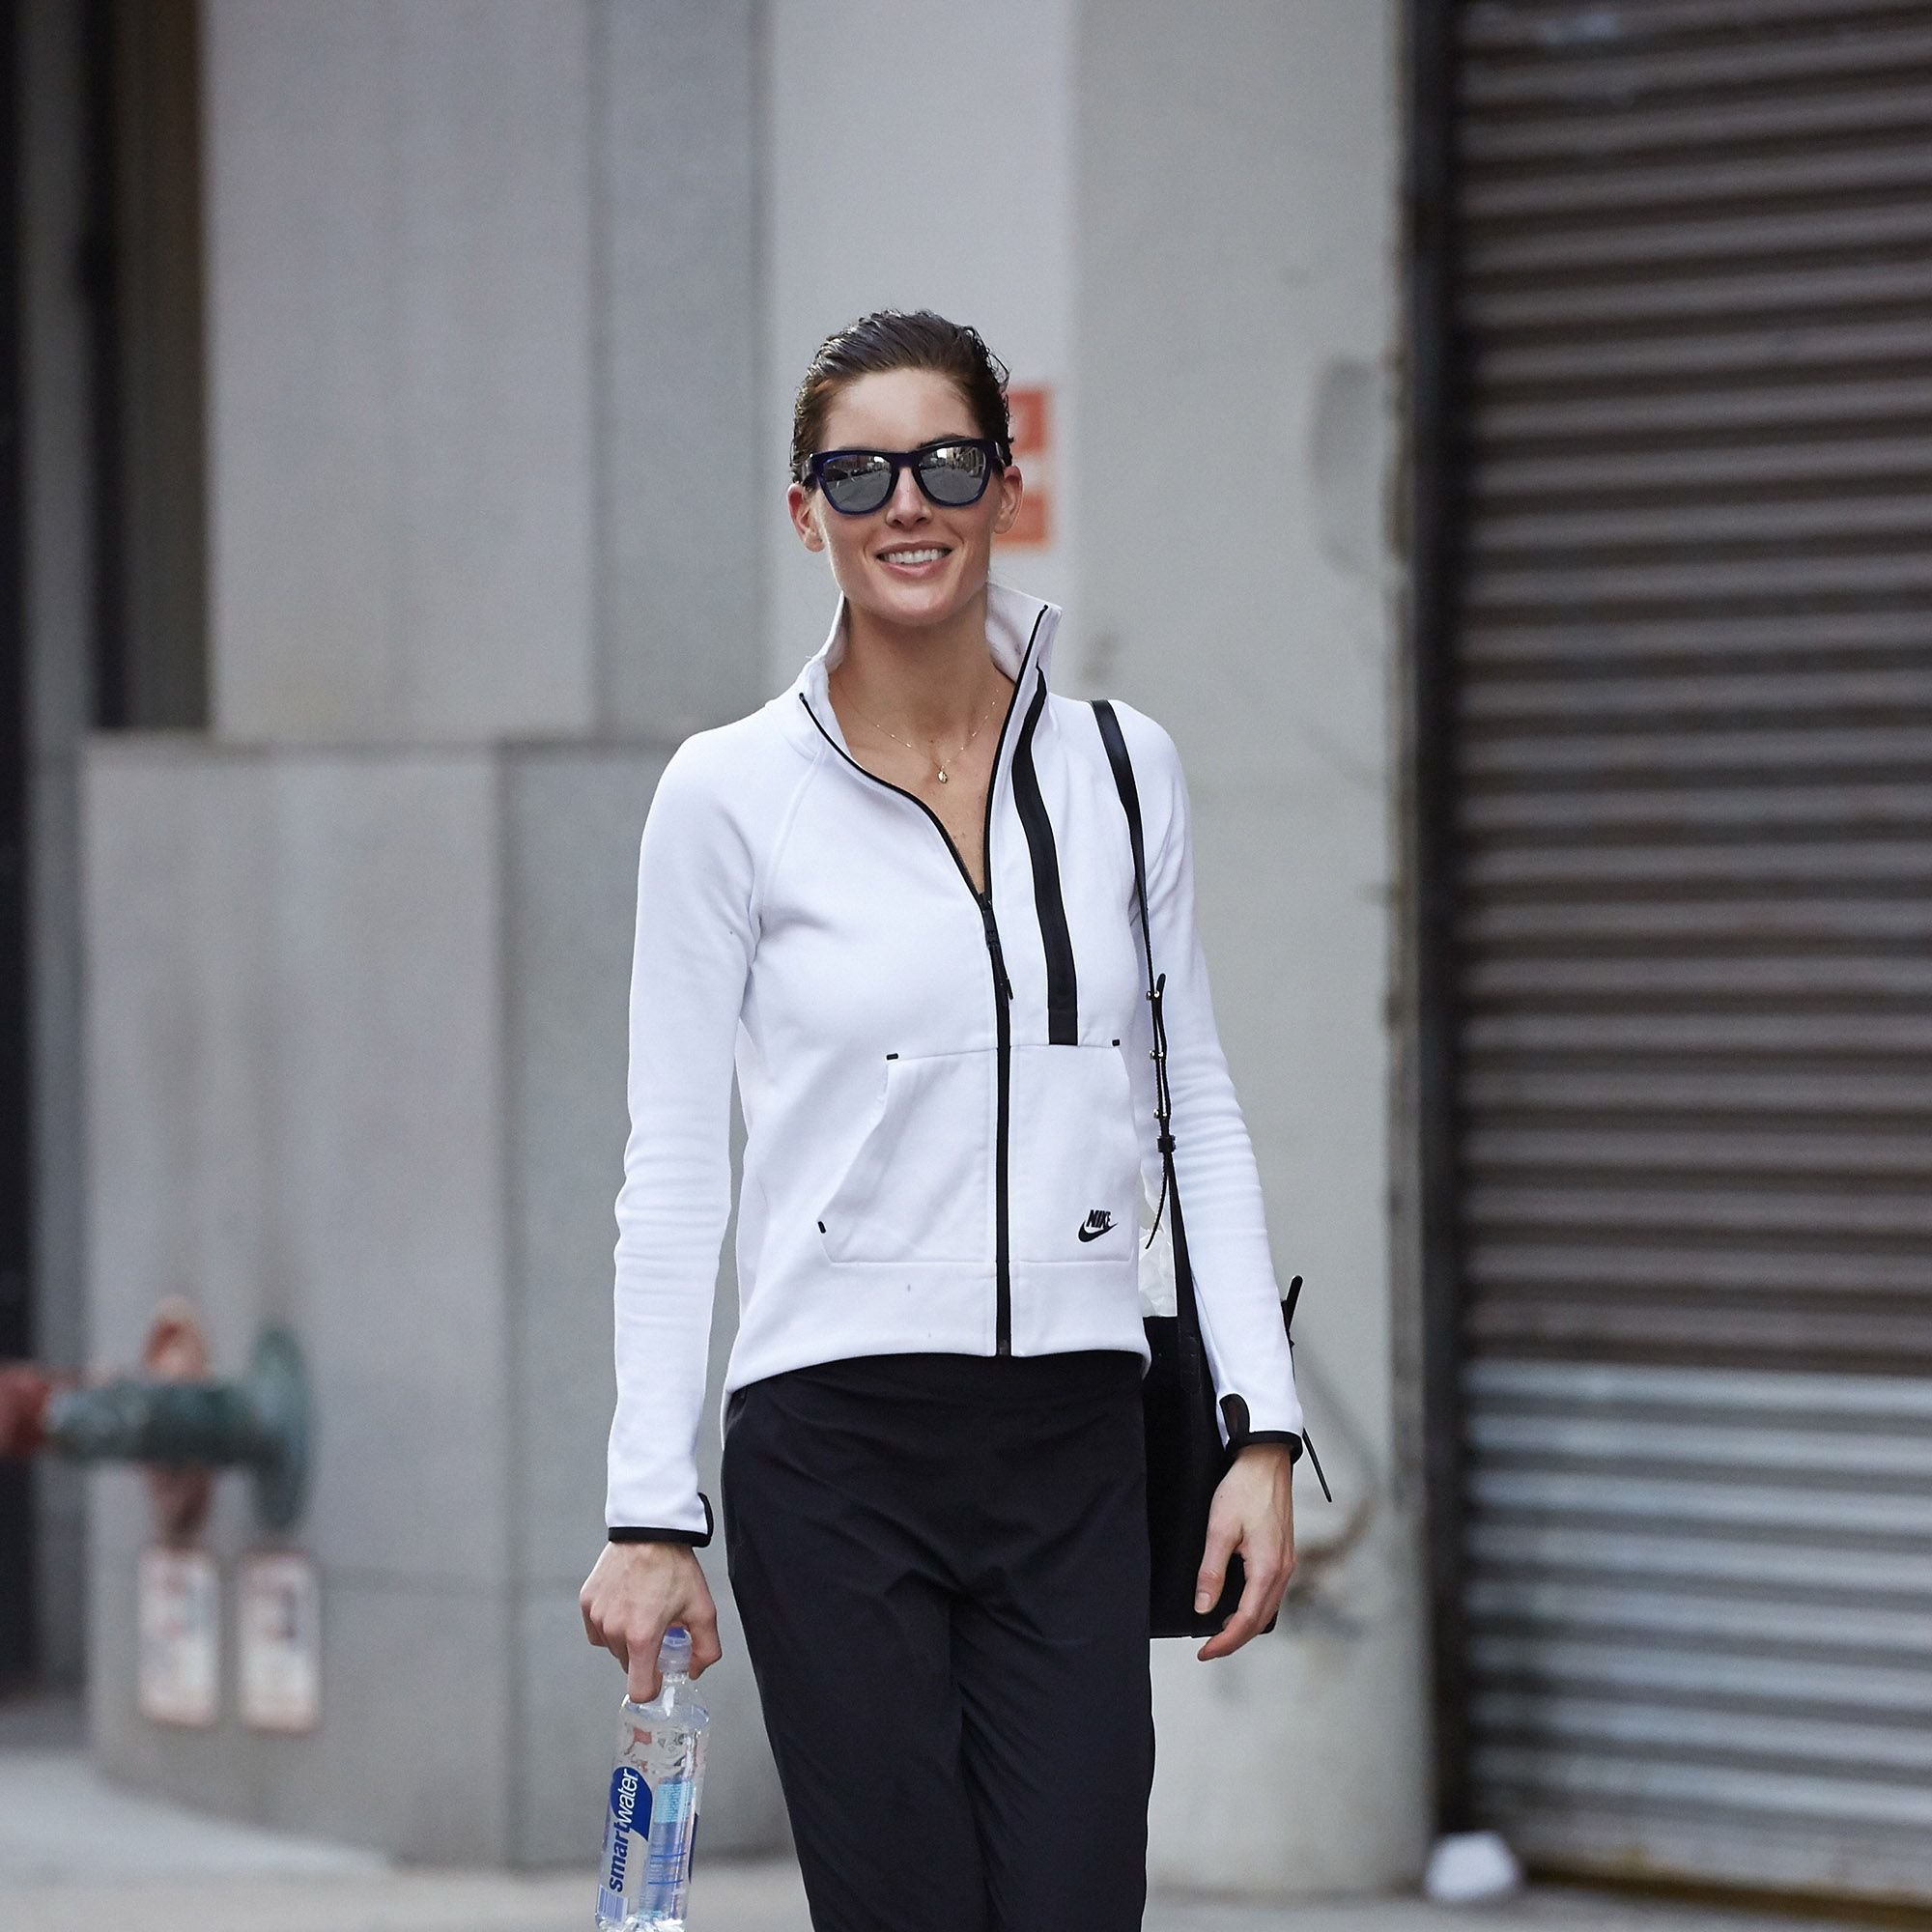 Hilary Rhoda seen wearing fitness gear while returning from a spin class in the East Village neighborhood of NYC on April 18, 2015.&#xA&#x3B;&lt&#x3B;P&gt&#x3B;&#xA&#x3B;Pictured: Hilary Rhoda&#xA&#x3B;&lt&#x3B;B&gt&#x3B;Ref: SPL1003335  180415  &lt&#x3B;/B&gt&#x3B;&lt&#x3B;BR/&gt&#x3B;&#xA&#x3B;Picture by: J. Webber / Splash News&lt&#x3B;BR/&gt&#x3B;&#xA&#x3B;&lt&#x3B;/P&gt&#x3B;&lt&#x3B;P&gt&#x3B;&#xA&#x3B;&lt&#x3B;B&gt&#x3B;Splash News and Pictures&lt&#x3B;/B&gt&#x3B;&lt&#x3B;BR/&gt&#x3B;&#xA&#x3B;Los Angeles:310-821-2666&lt&#x3B;BR/&gt&#x3B;&#xA&#x3B;New York:212-619-2666&lt&#x3B;BR/&gt&#x3B;&#xA&#x3B;London:870-934-2666&lt&#x3B;BR/&gt&#x3B;&#xA&#x3B;photodesk@splashnews.com&lt&#x3B;BR/&gt&#x3B;&#xA&#x3B;&lt&#x3B;/P&gt&#x3B;